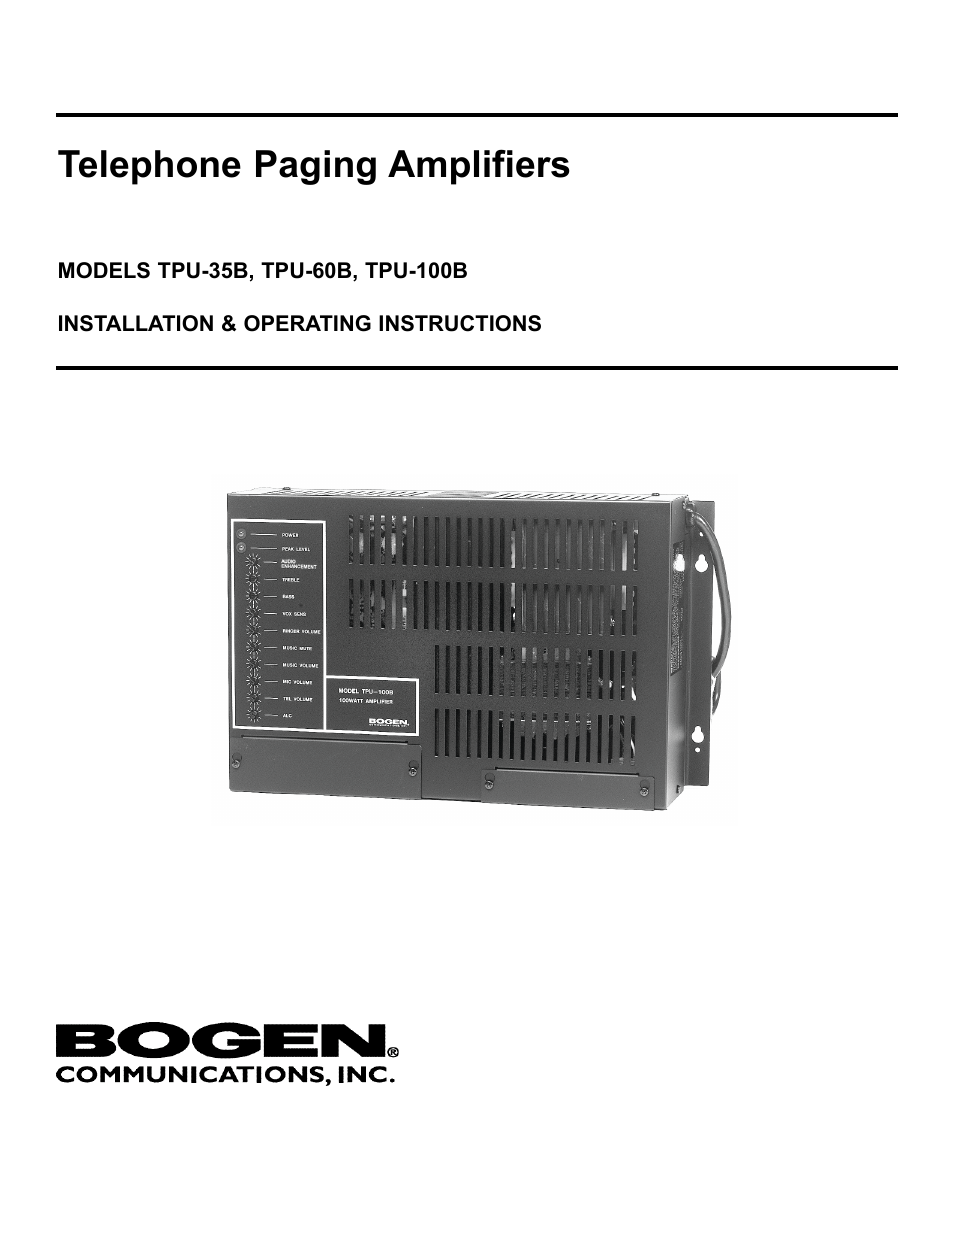 bogen tpu 35b user manual 8 pages also for tpu 100b tpu 60b rh manualsdir com Bogen Model TPU100B Bogen Amplifier Wiring